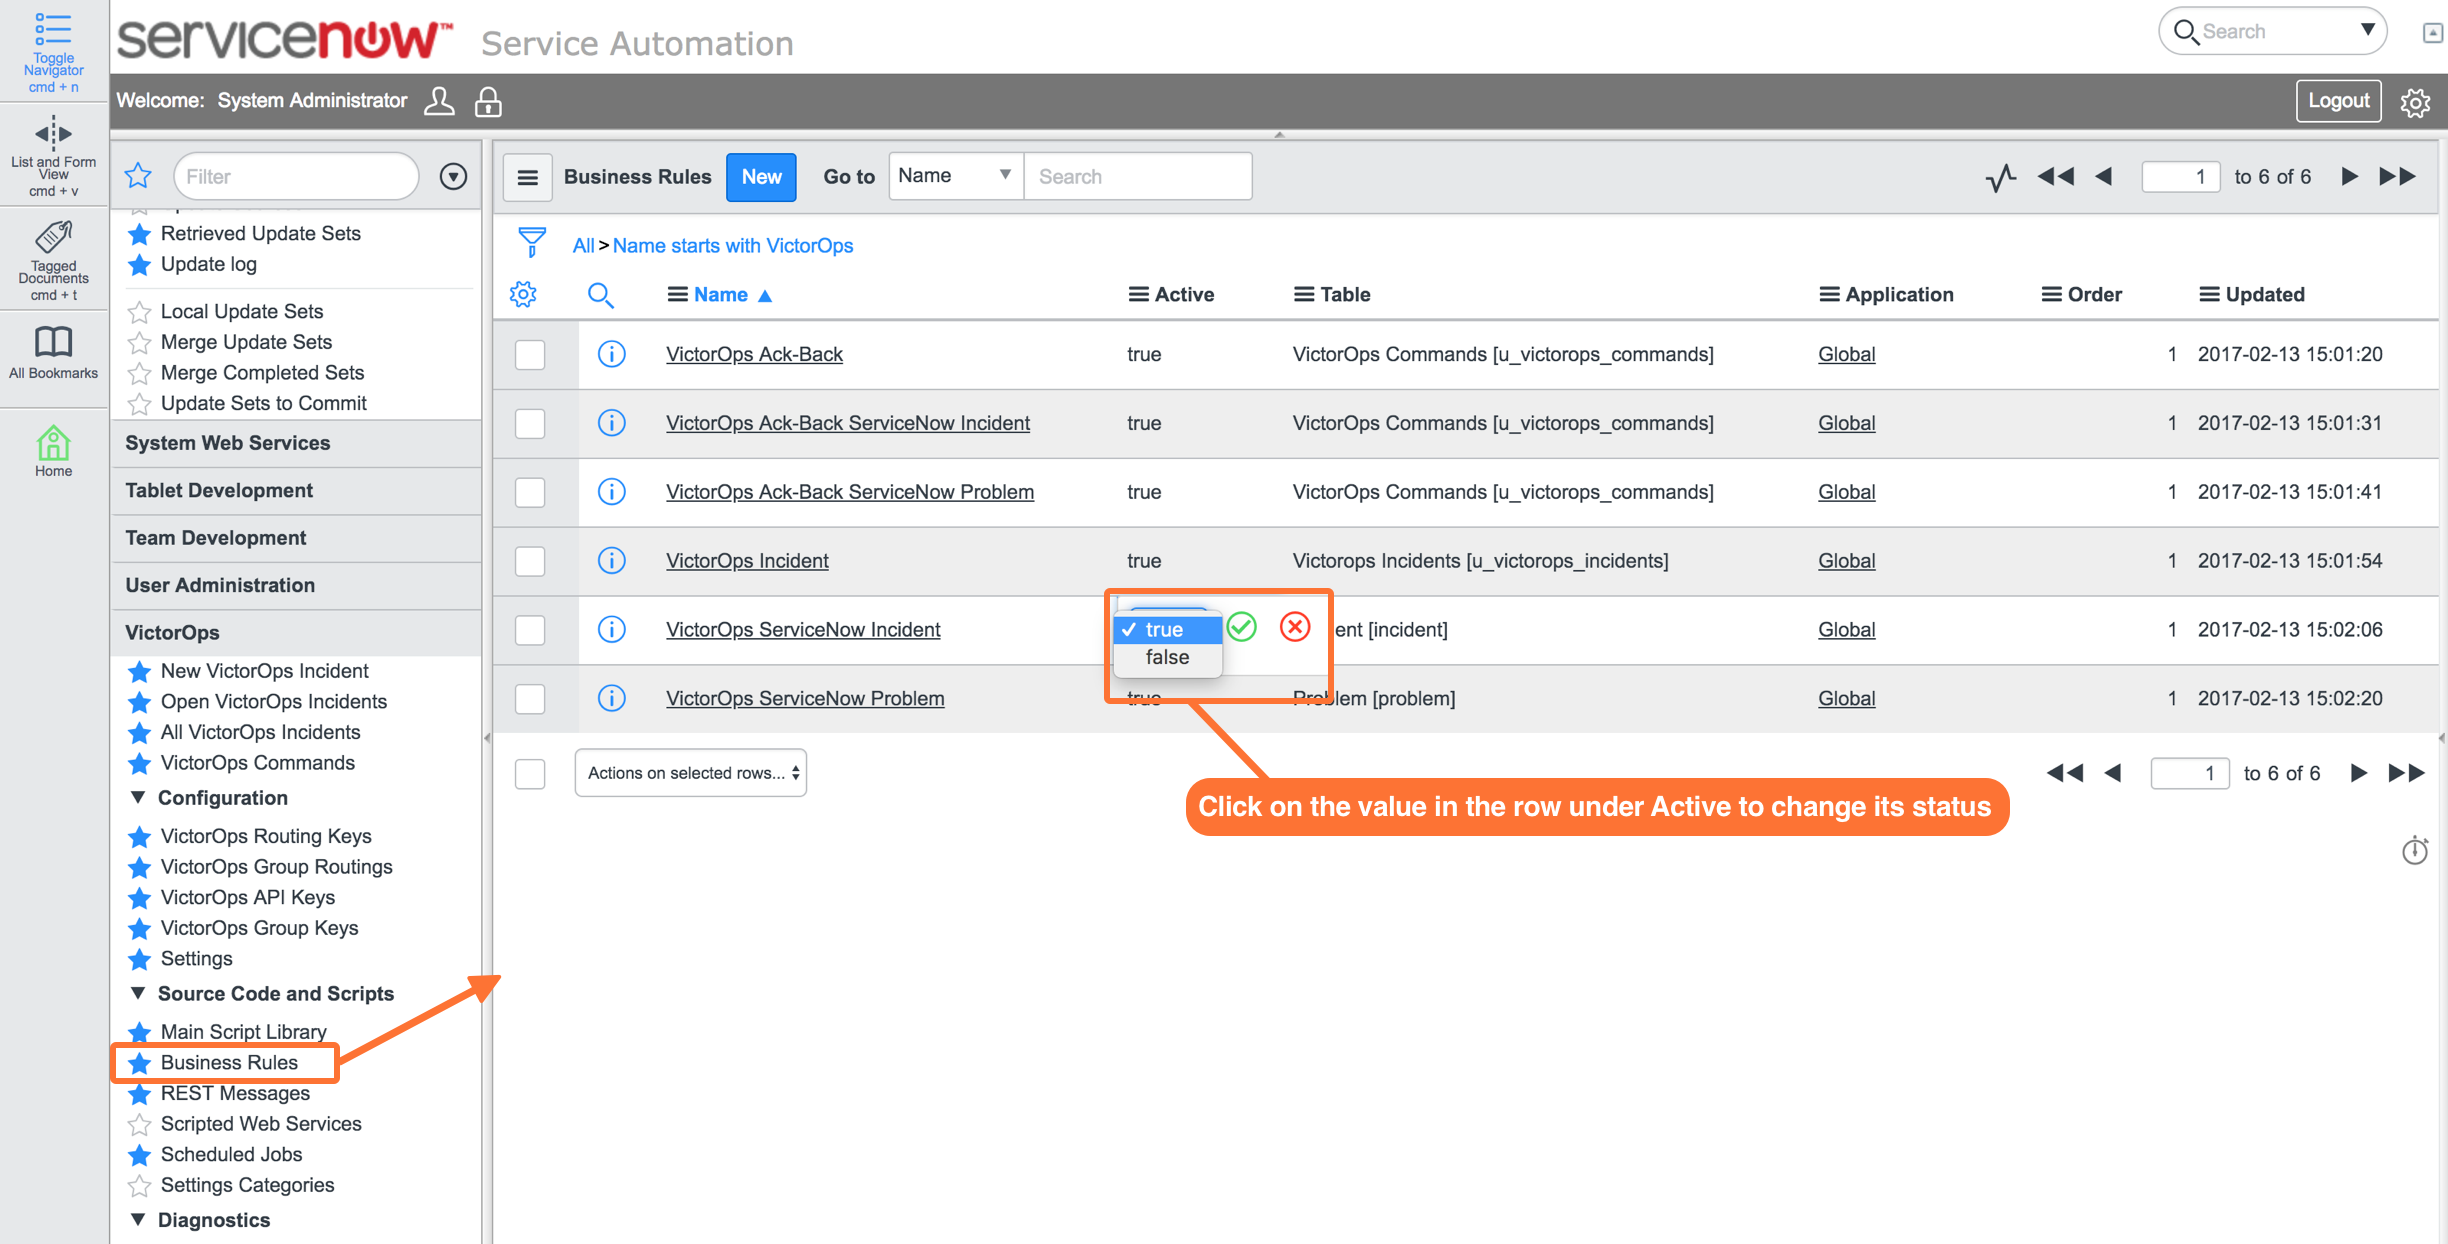 ServiceNow Integration Guide | VictorOps Knowledge Base